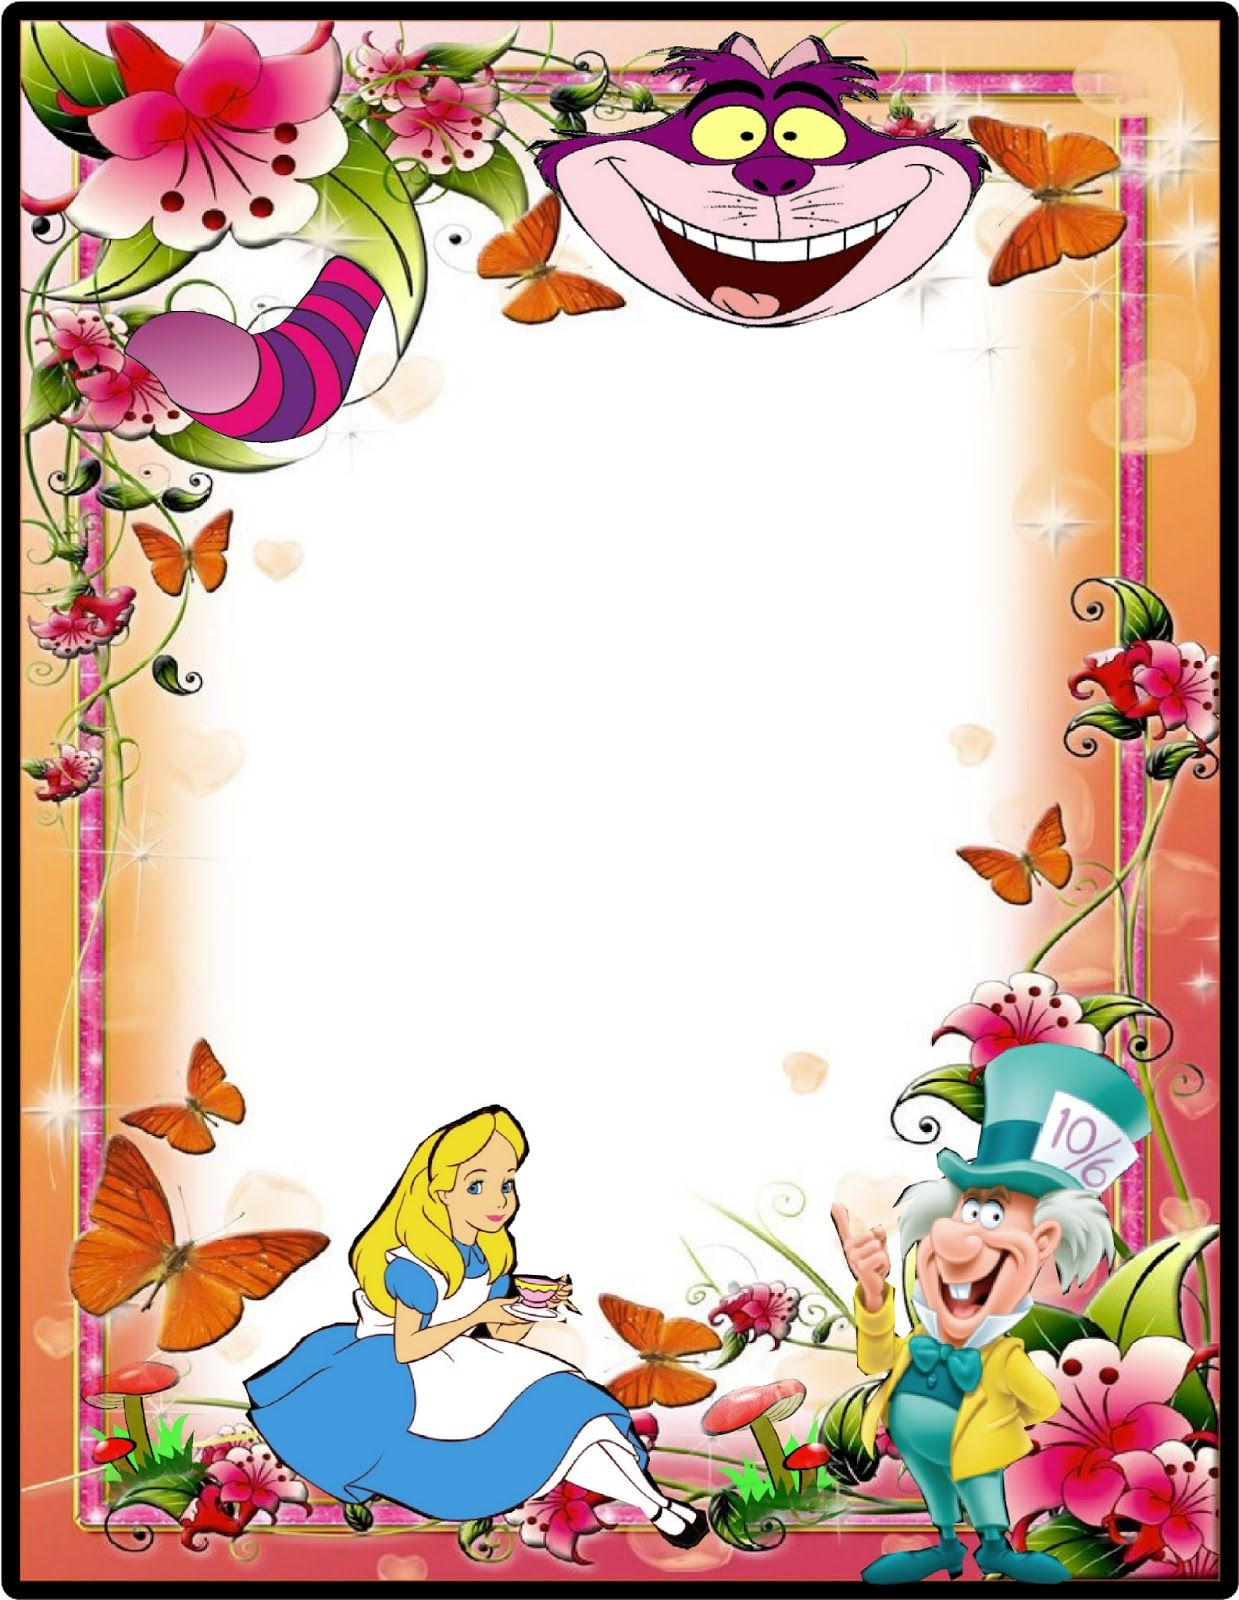 Alice In Wonderland Mad Hatter Party Free Border For Invitaions